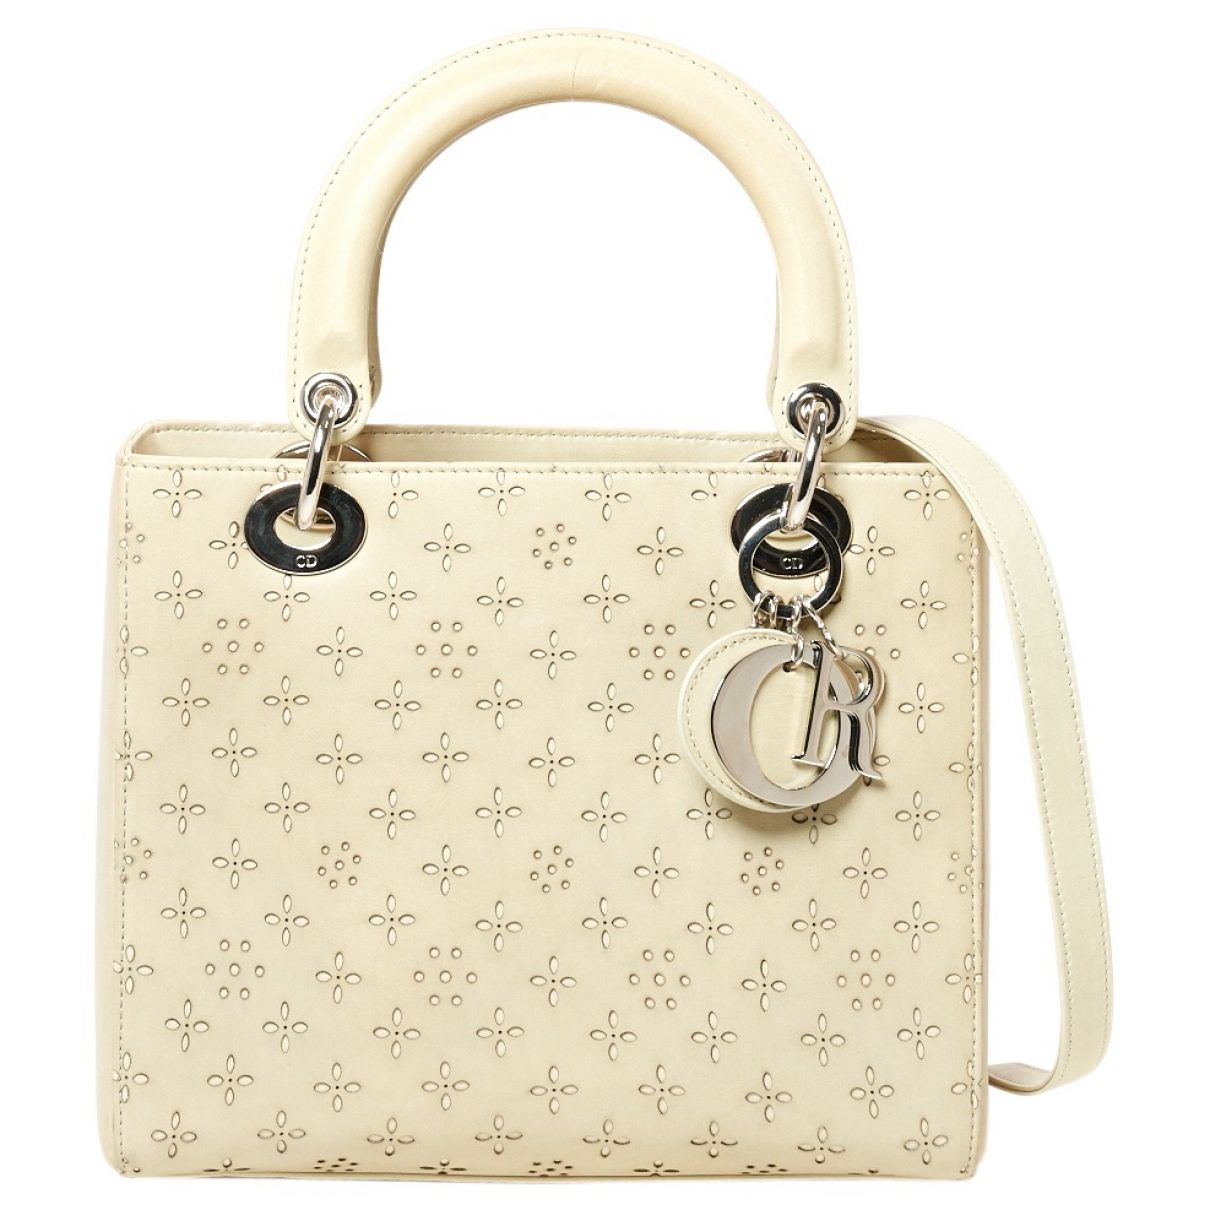 CHRISTIAN DIOR LADY BAG  4f8da4af6376c